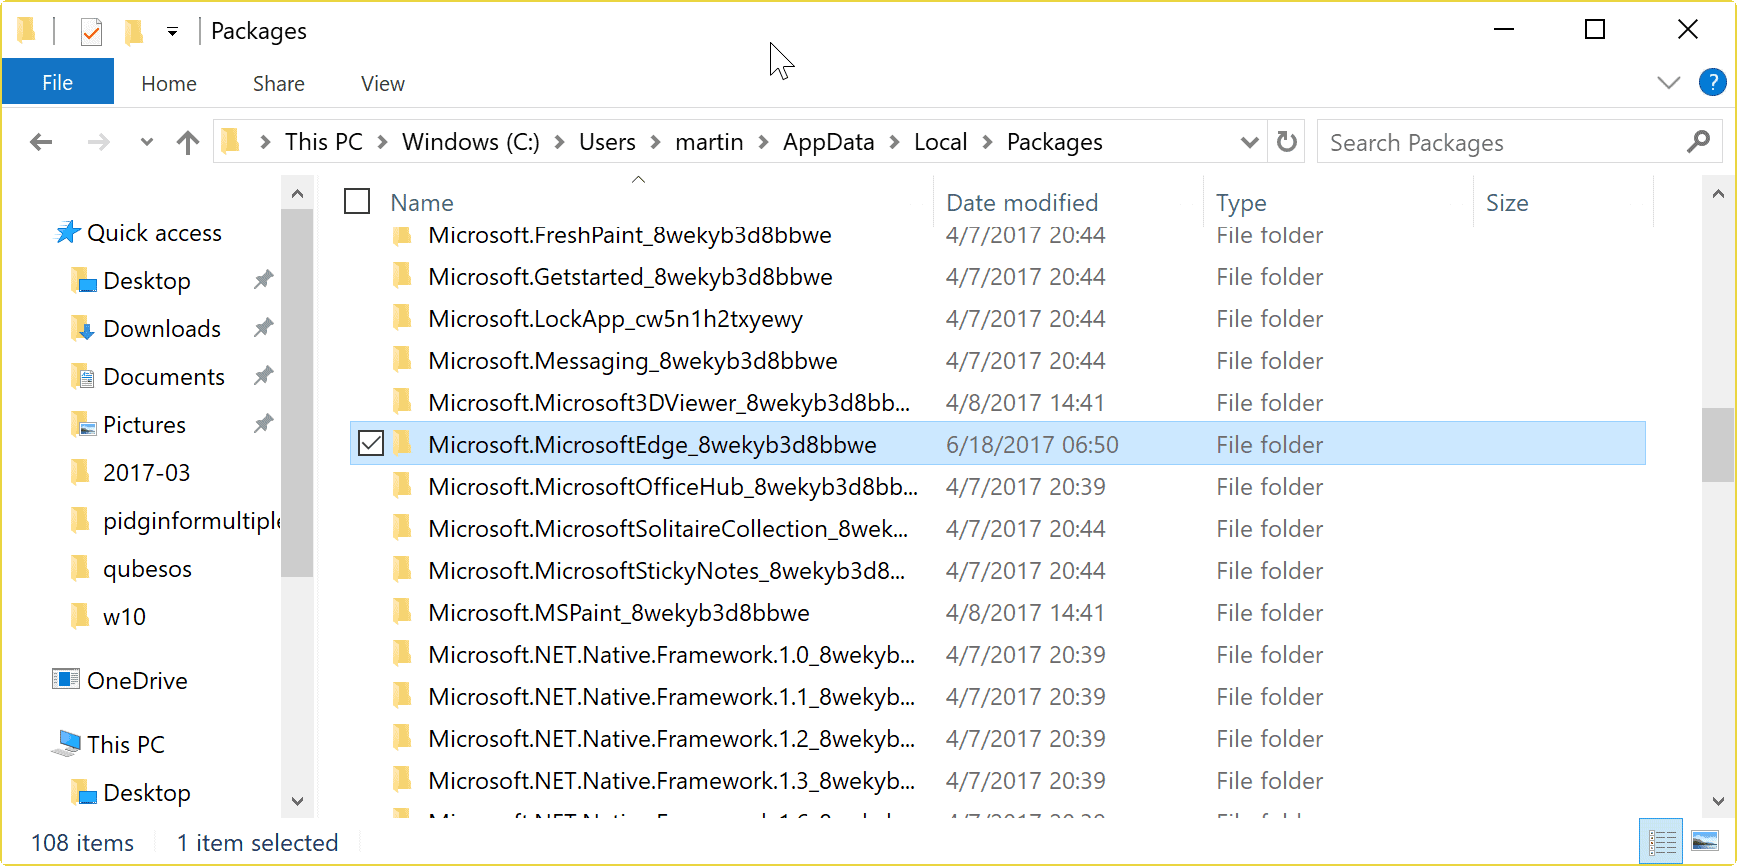 microsoft edge folder